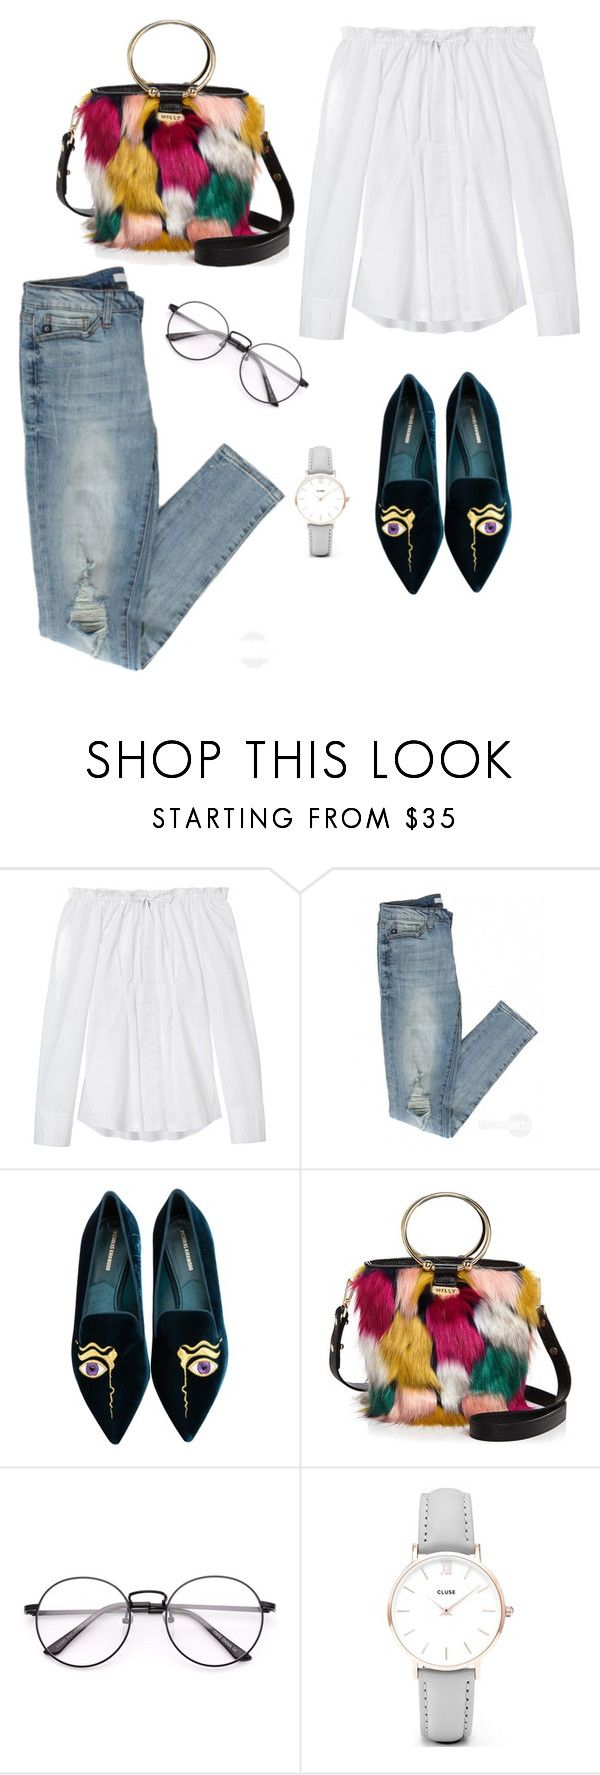 """14:59"" by esztiitoth on Polyvore featuring TIBI, Nicholas Kirkwood, Milly and CLUSE"